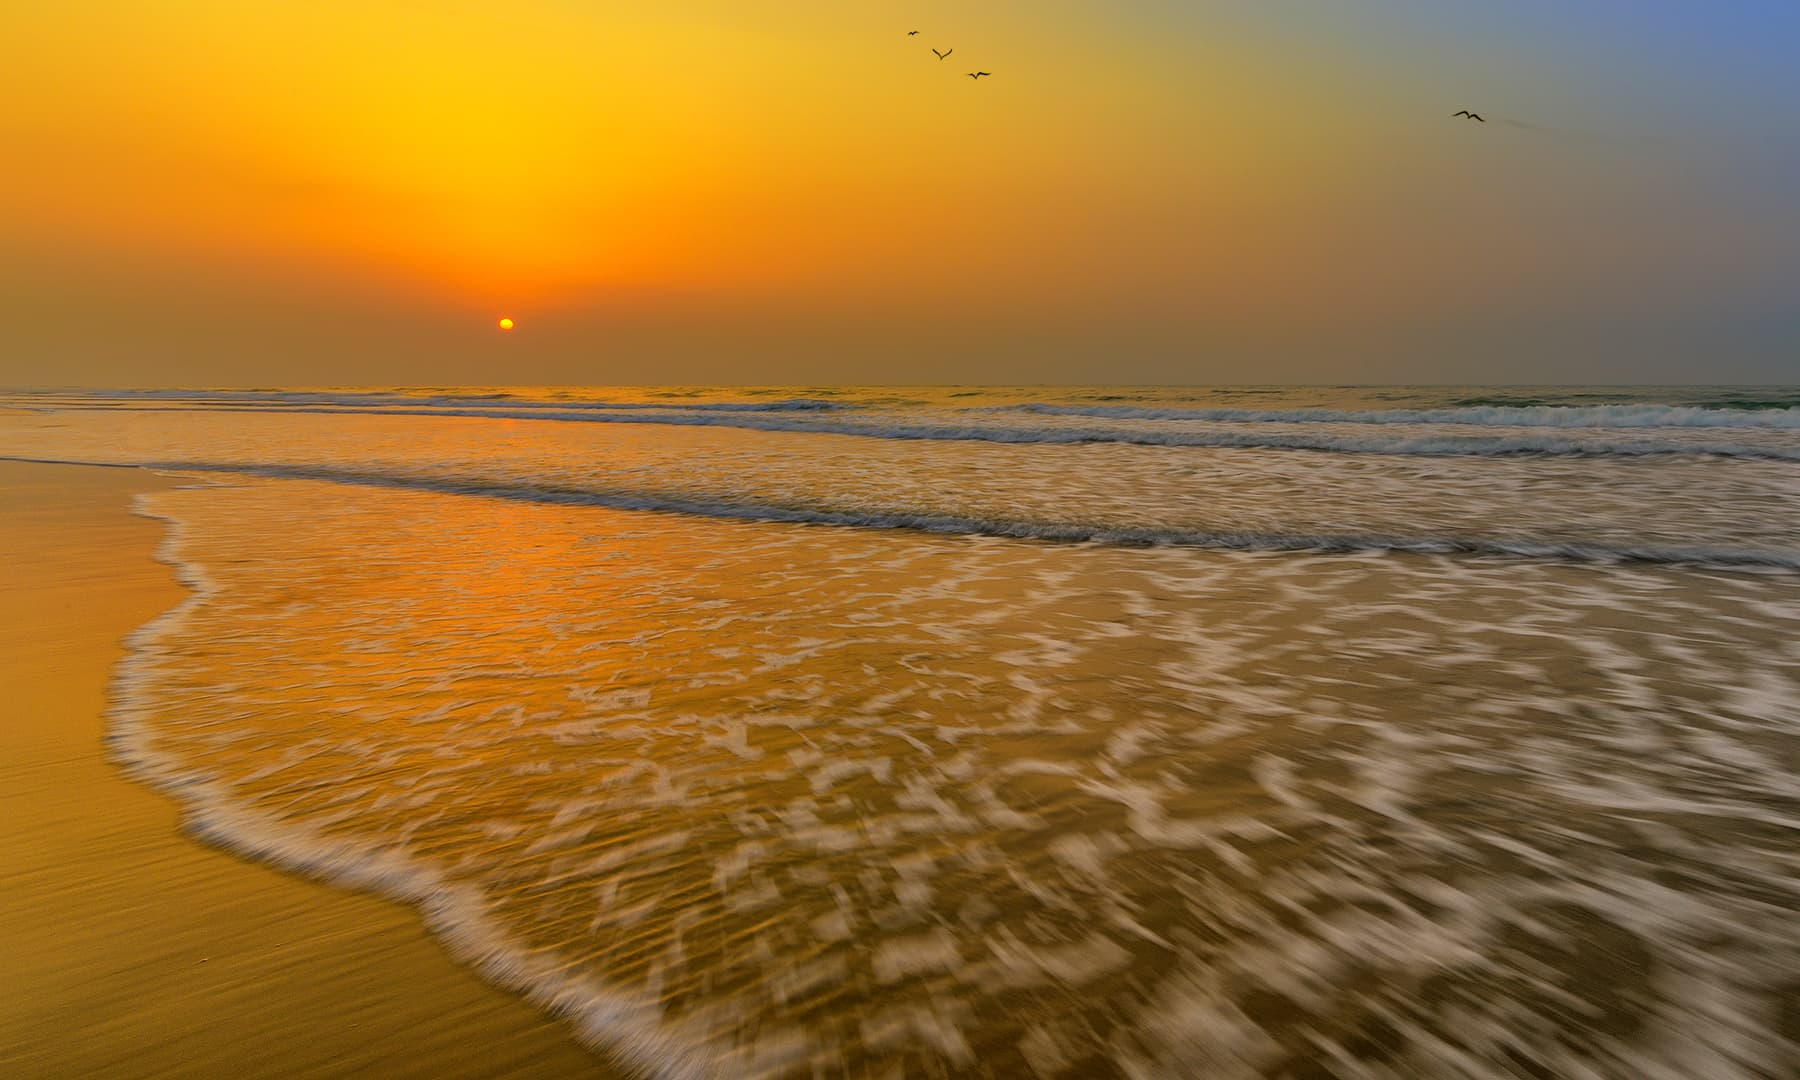 An exhibition of sunrise over the coast of Kund Malir - Syed Mehdi Bukhari